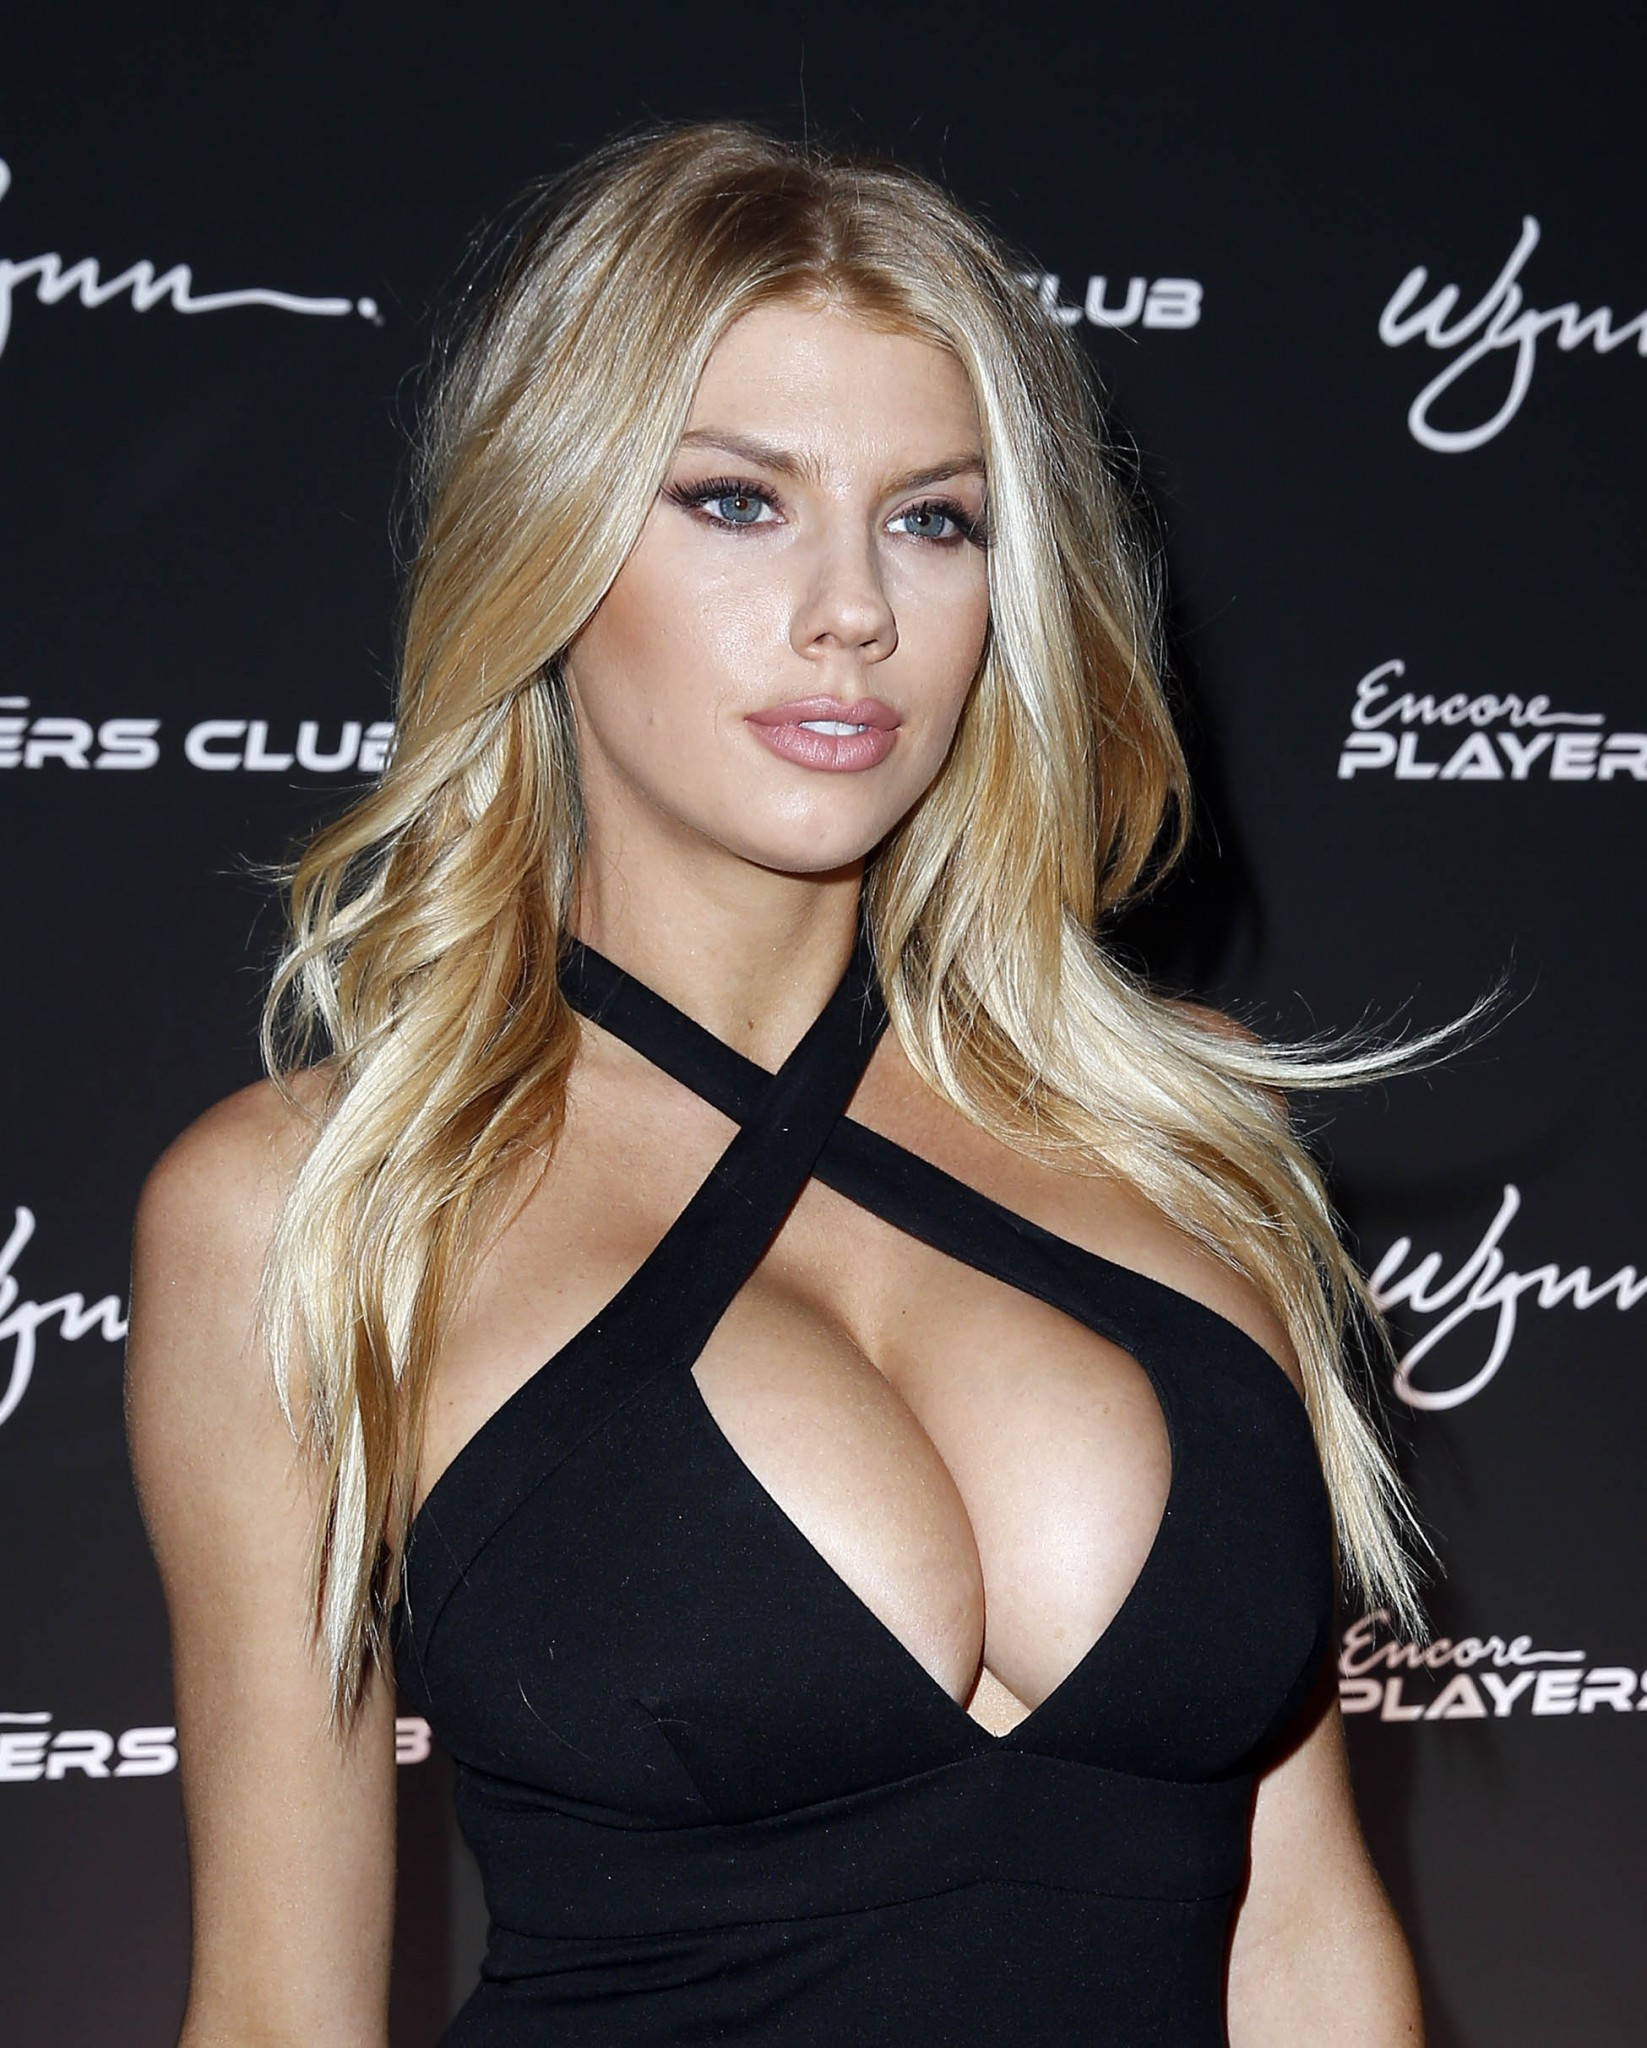 charlotte-mckinney-huge-cleavage-at-encore-players-club-09